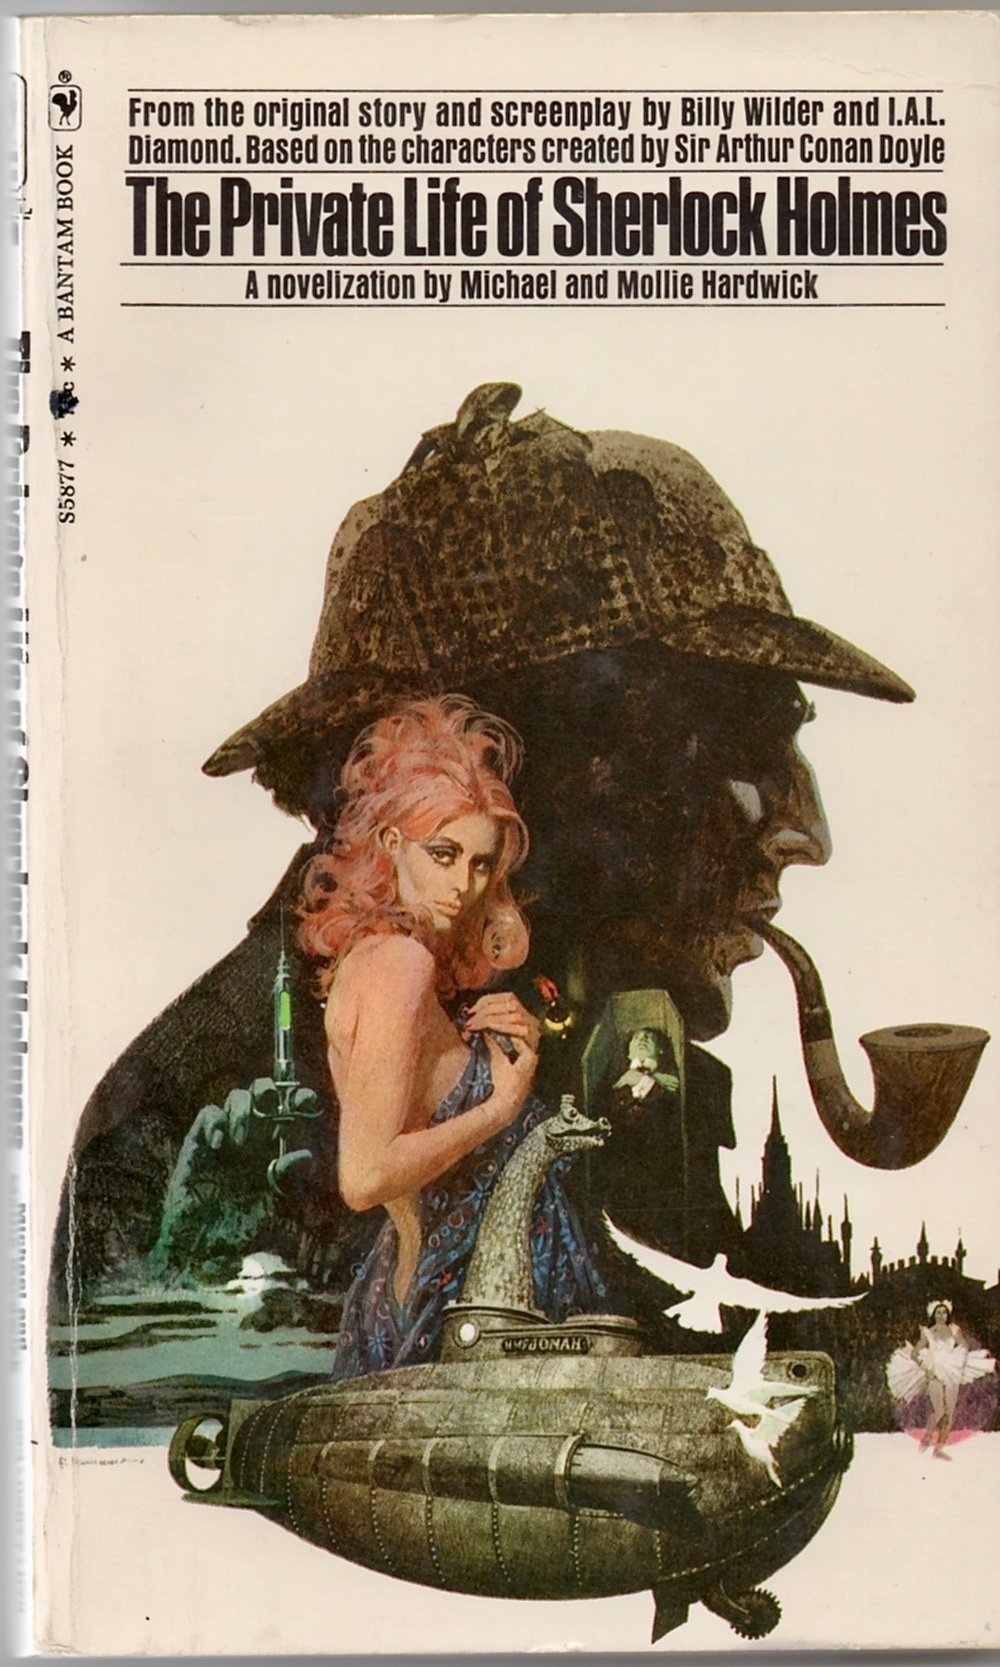 Once again,  The Private Life of Sherlock Holmes  graces the cover of a book. But it is not Starrett's well-known classic, but an adaptation of Billy Wilder's film.